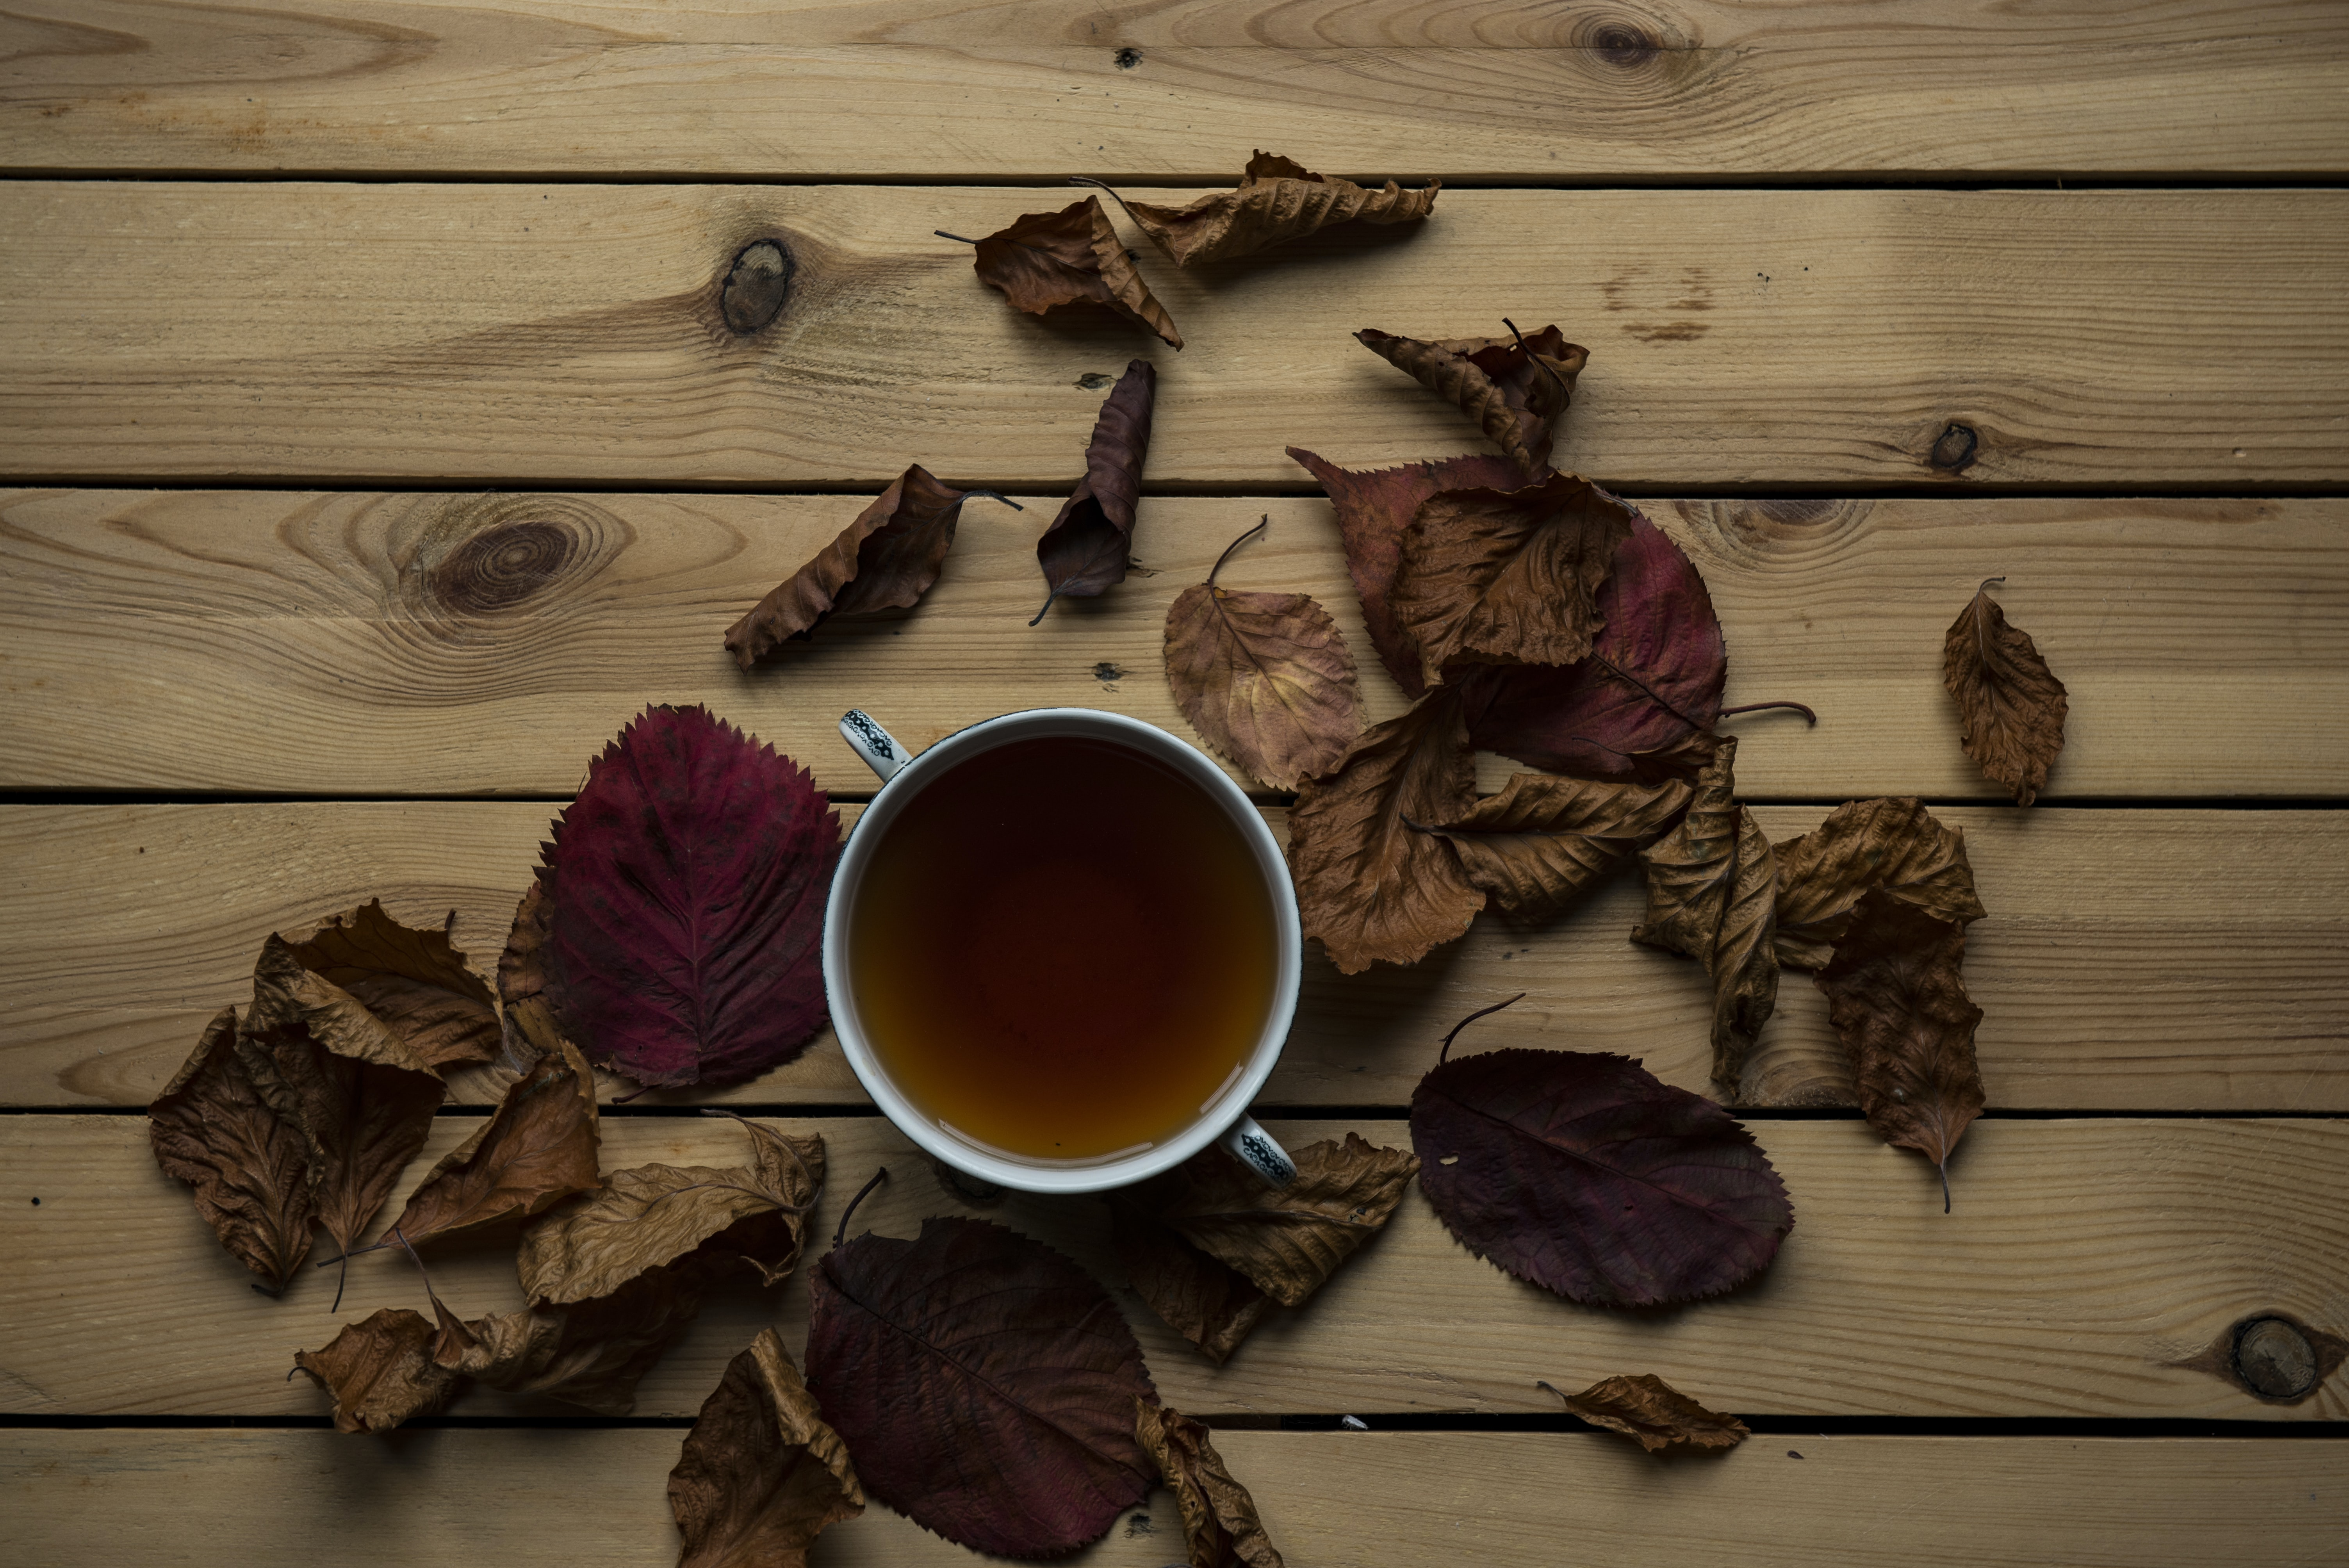 tea in cup on brown wooden surface